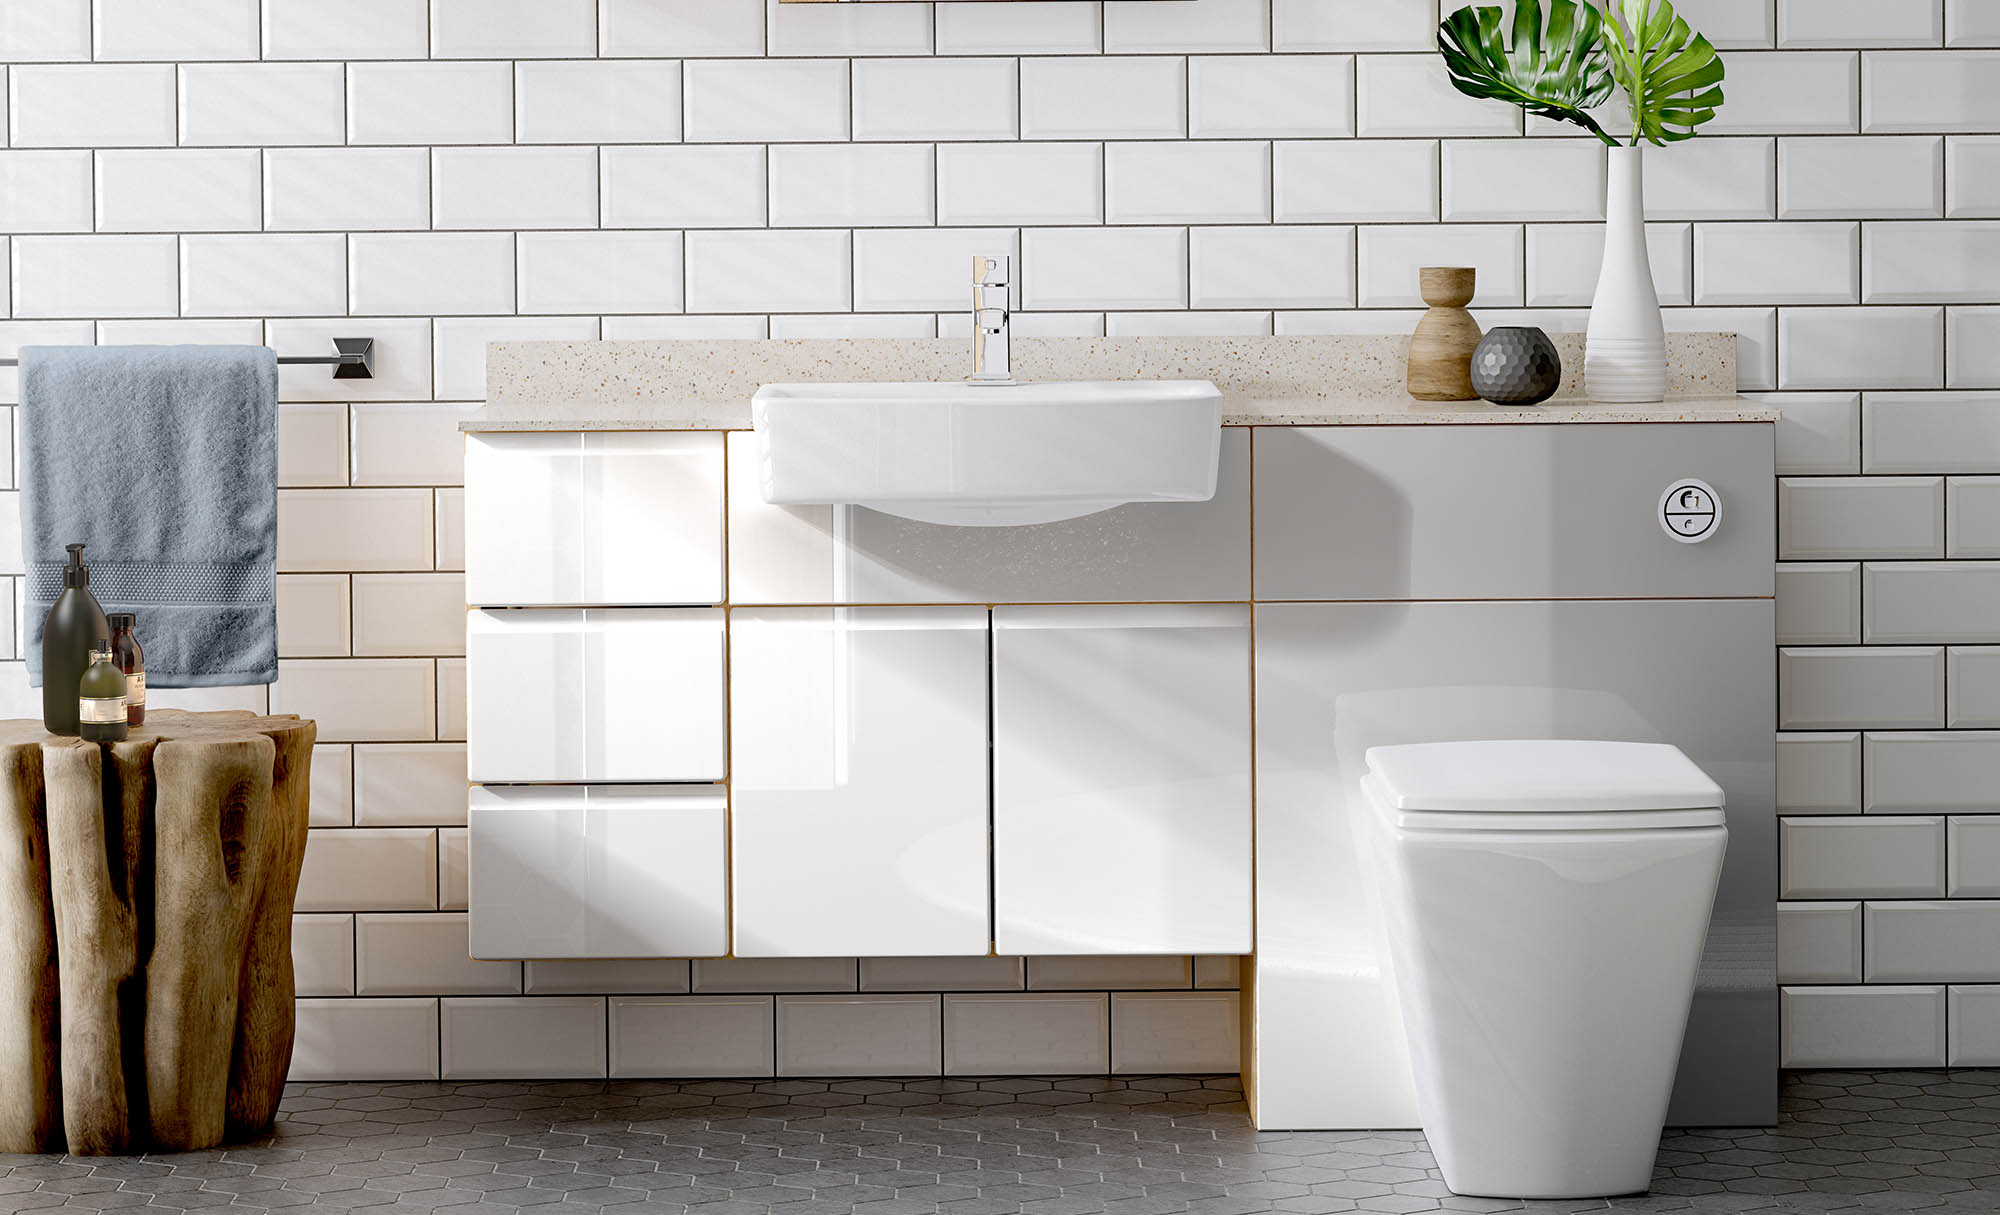 Gaddesby Bathrooms Europe High Gloss White